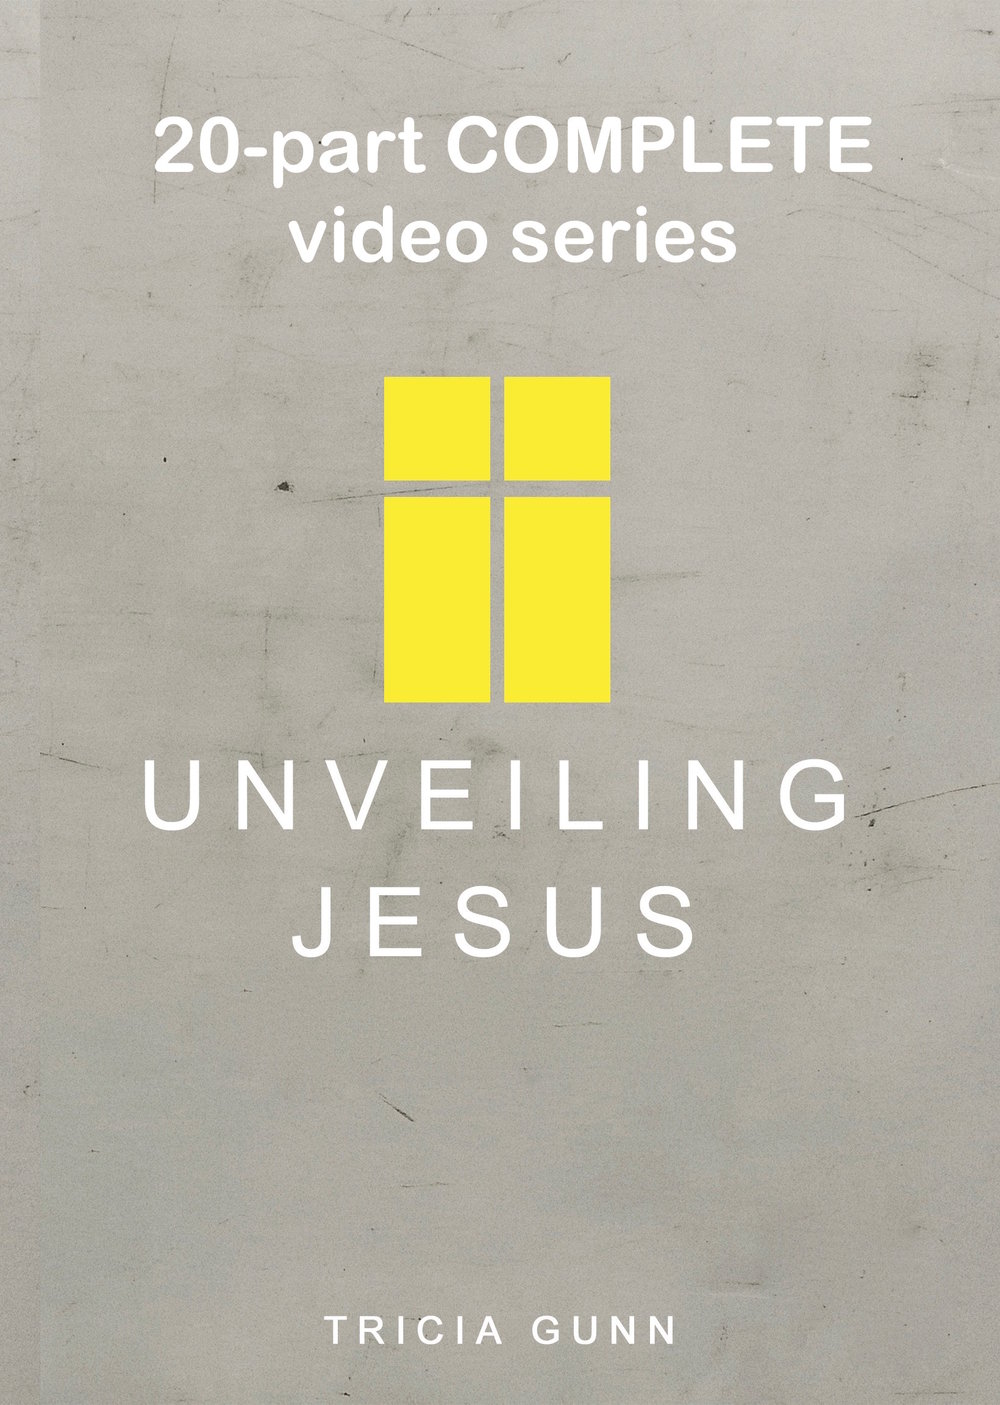 Unveiling-Jesus_1-10_download.jpg